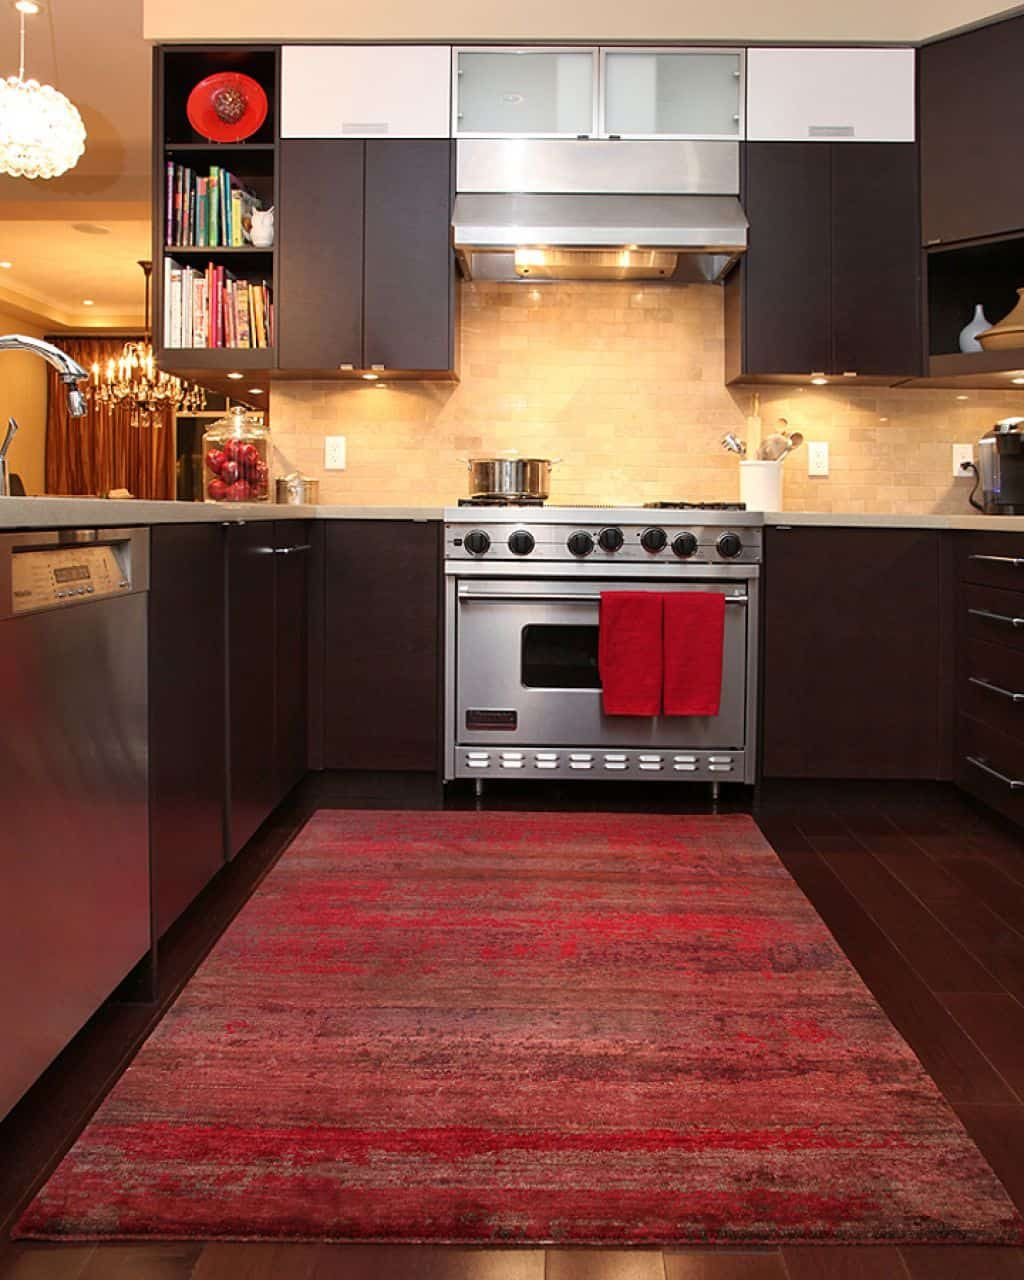 Modern Kitchen With Brown Cabinets And Red Rug Cleaning Ways For